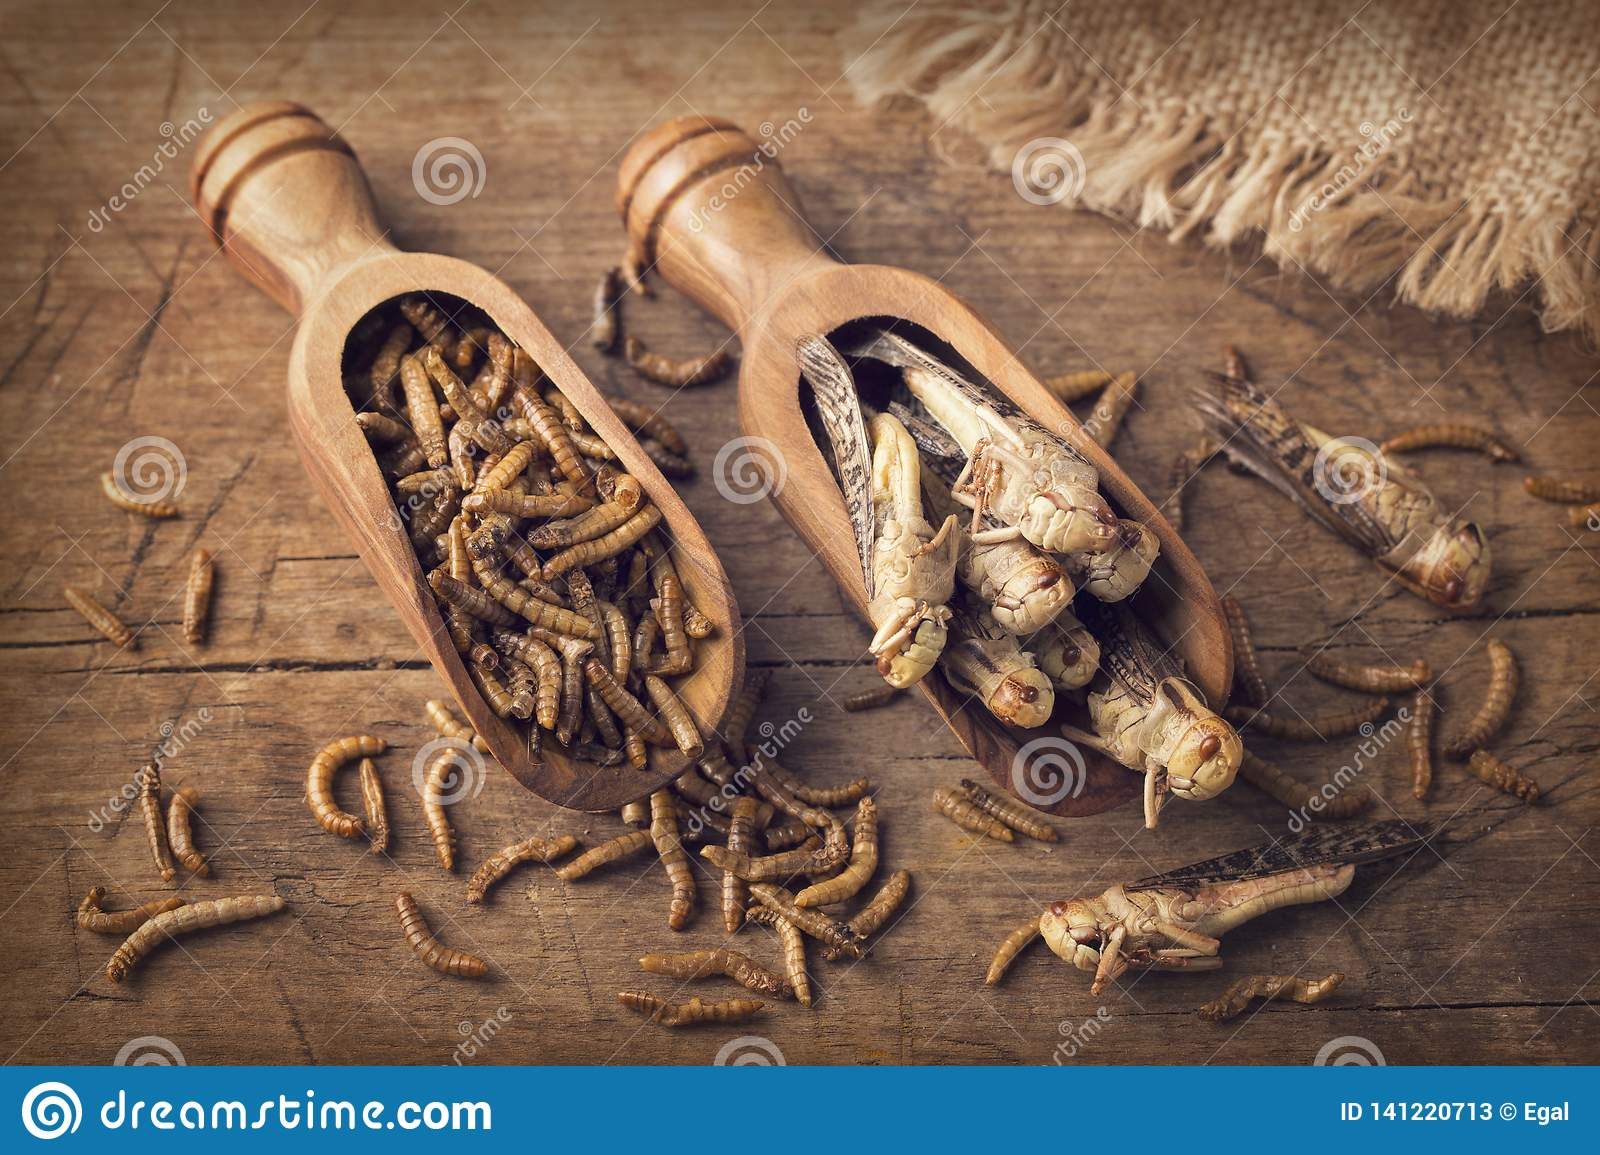 Edible mealworms and grasshoppers